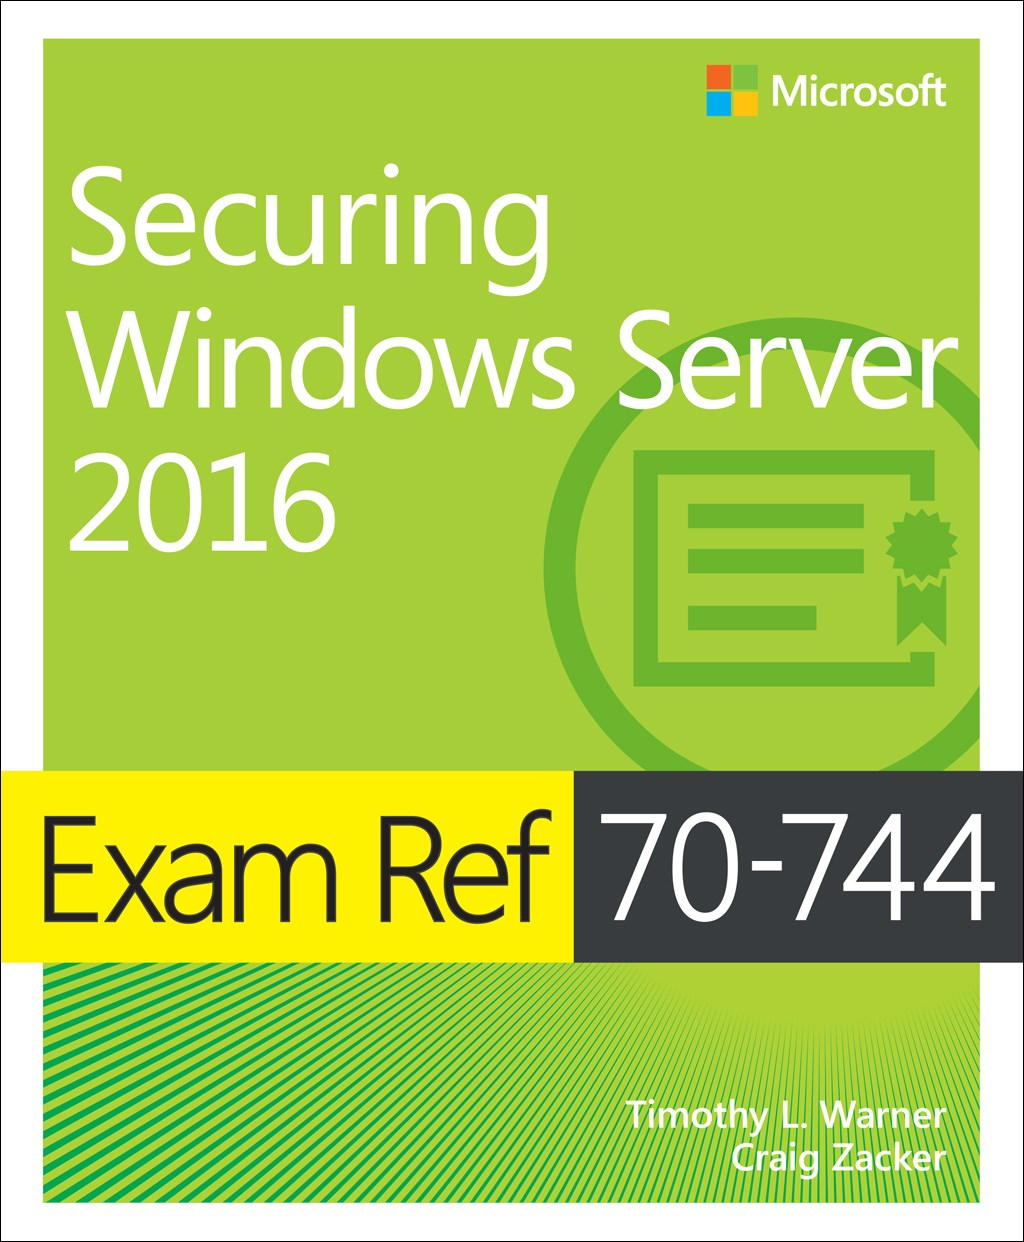 Exam Ref 70-744 Securing Windows Server 2016